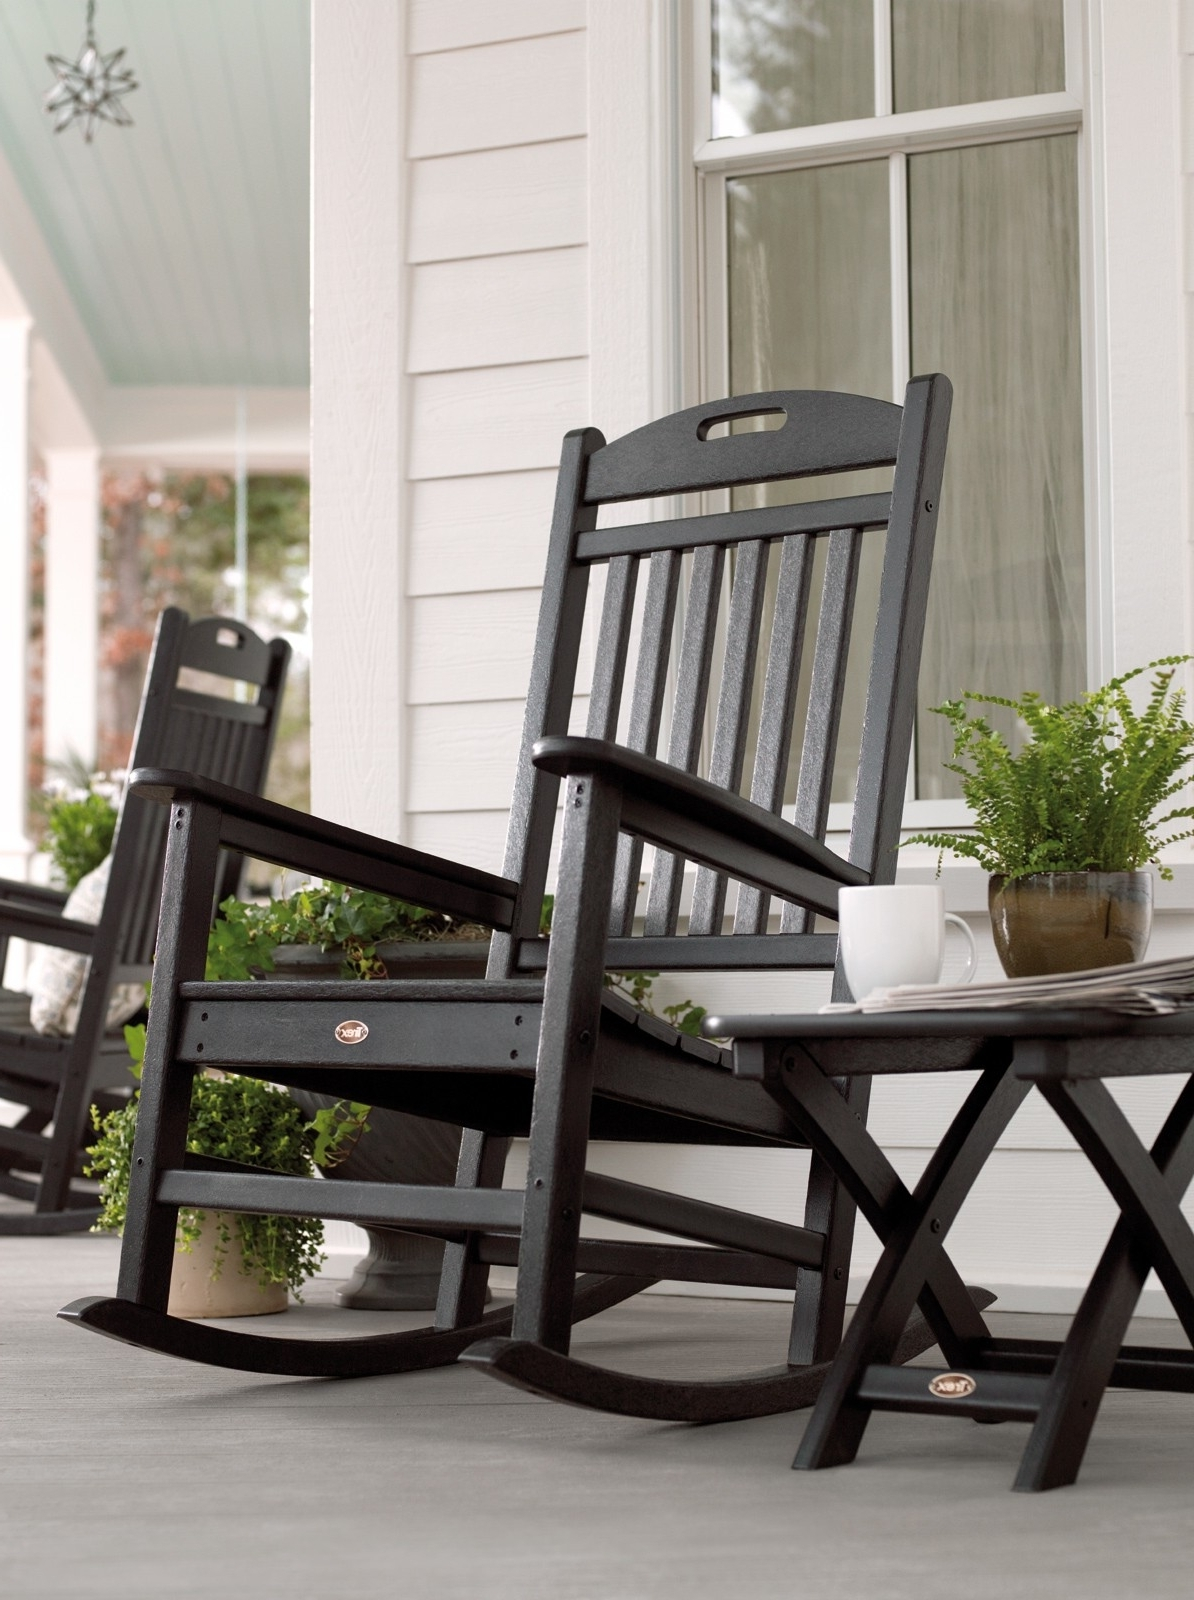 Outdoor Vinyl Rocking Chairs Intended For Widely Used Patio & Garden : Outdoor Rocking Chair Seat Cushions Outdoor Rocking (View 13 of 20)